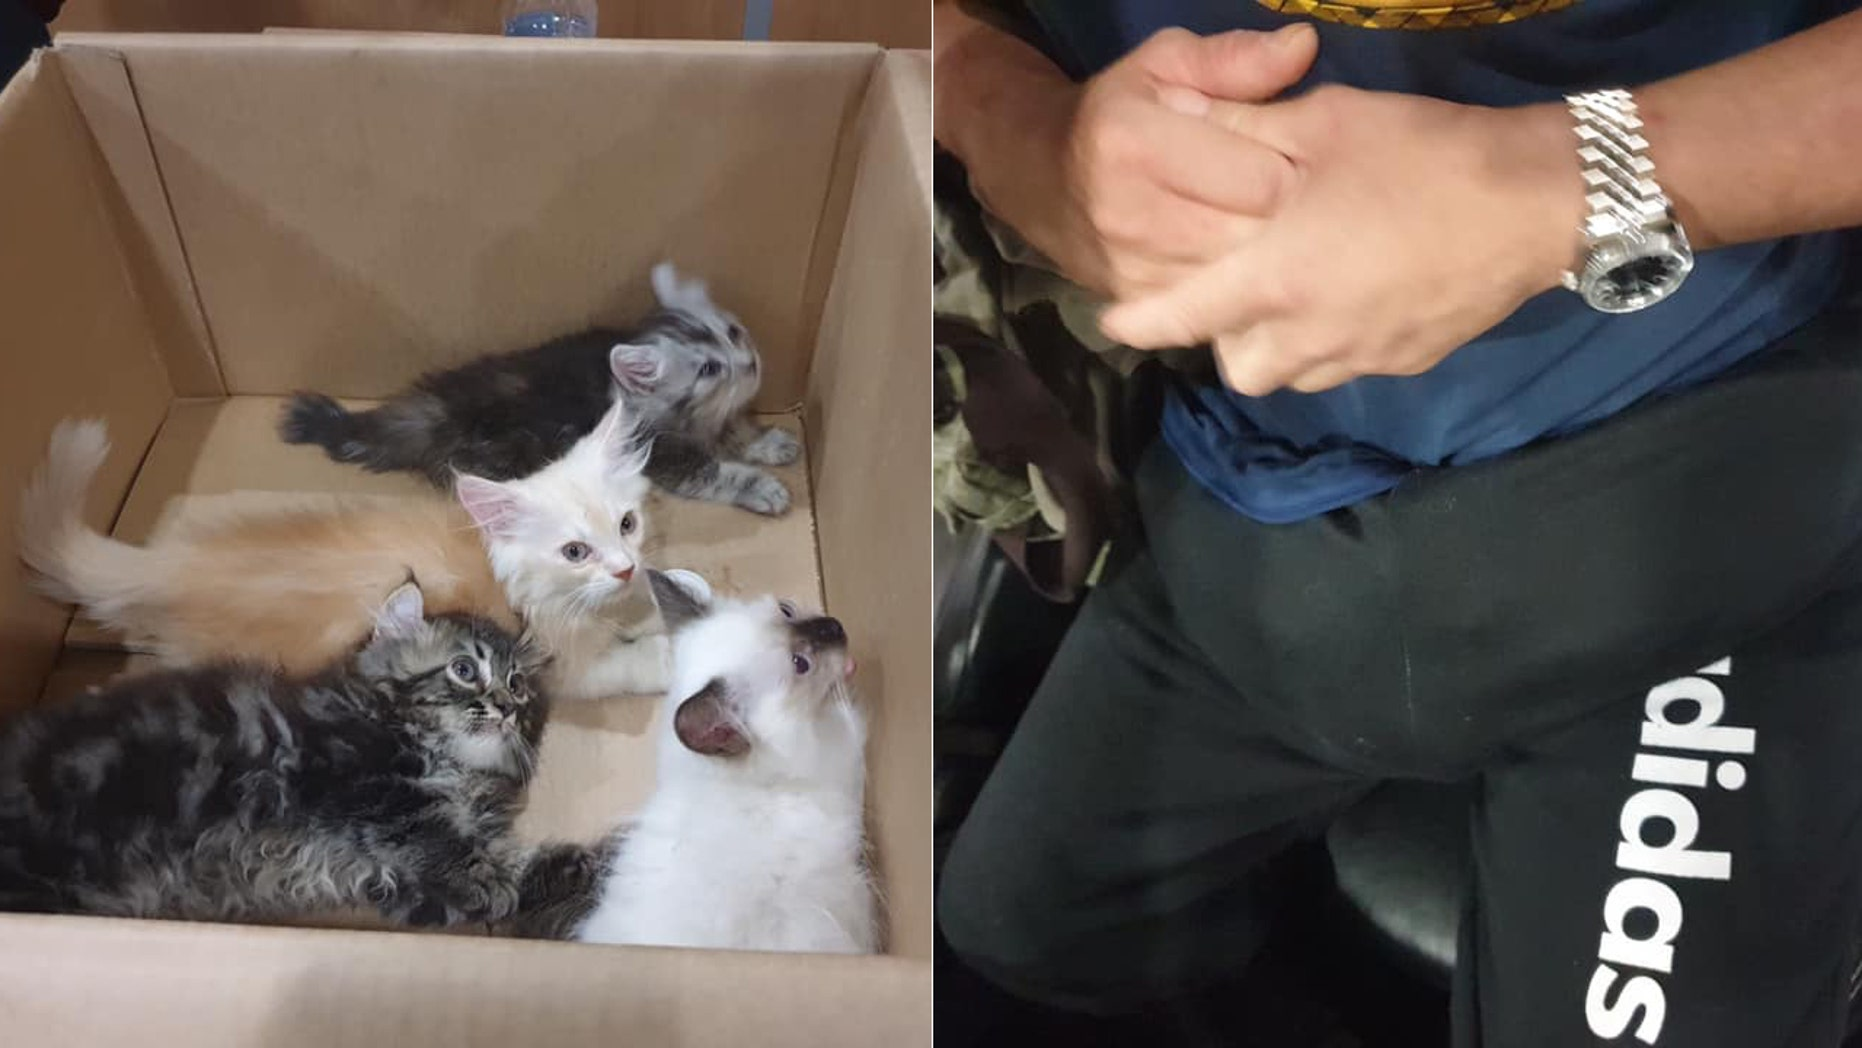 A Singaporean man was discovered with several kittens hidden in his pants.